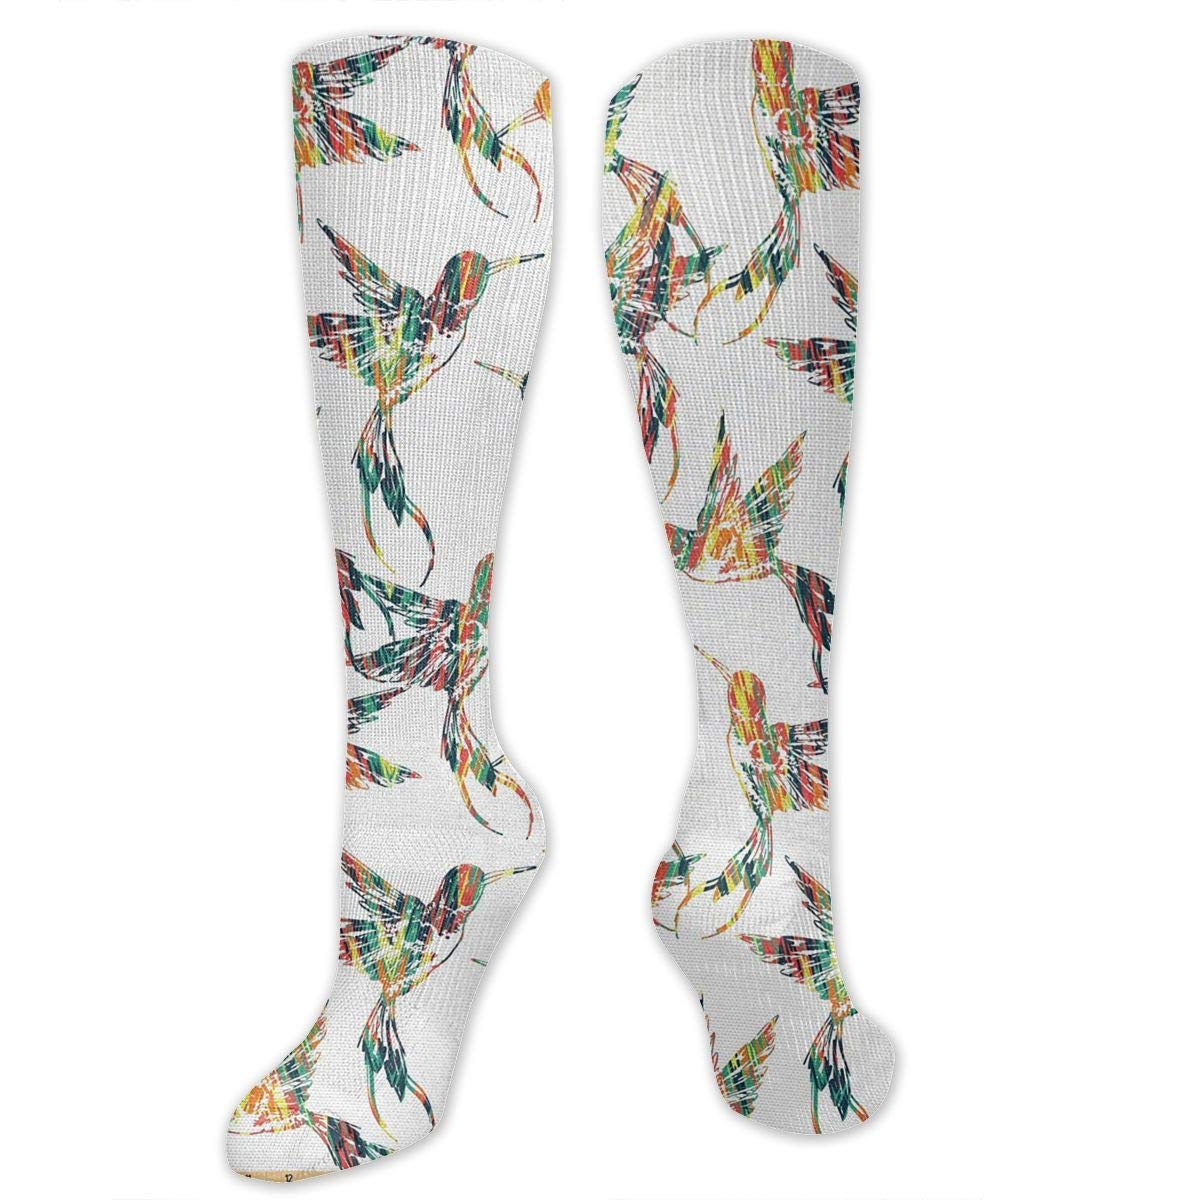 3bdfe53e579e Chanwazibibiliu Grungy Looking Colorful Bird Figures Mens Colorful Dress  Socks Funky Socks Men Multicolored Pattern Fashionable Fun Crew ...